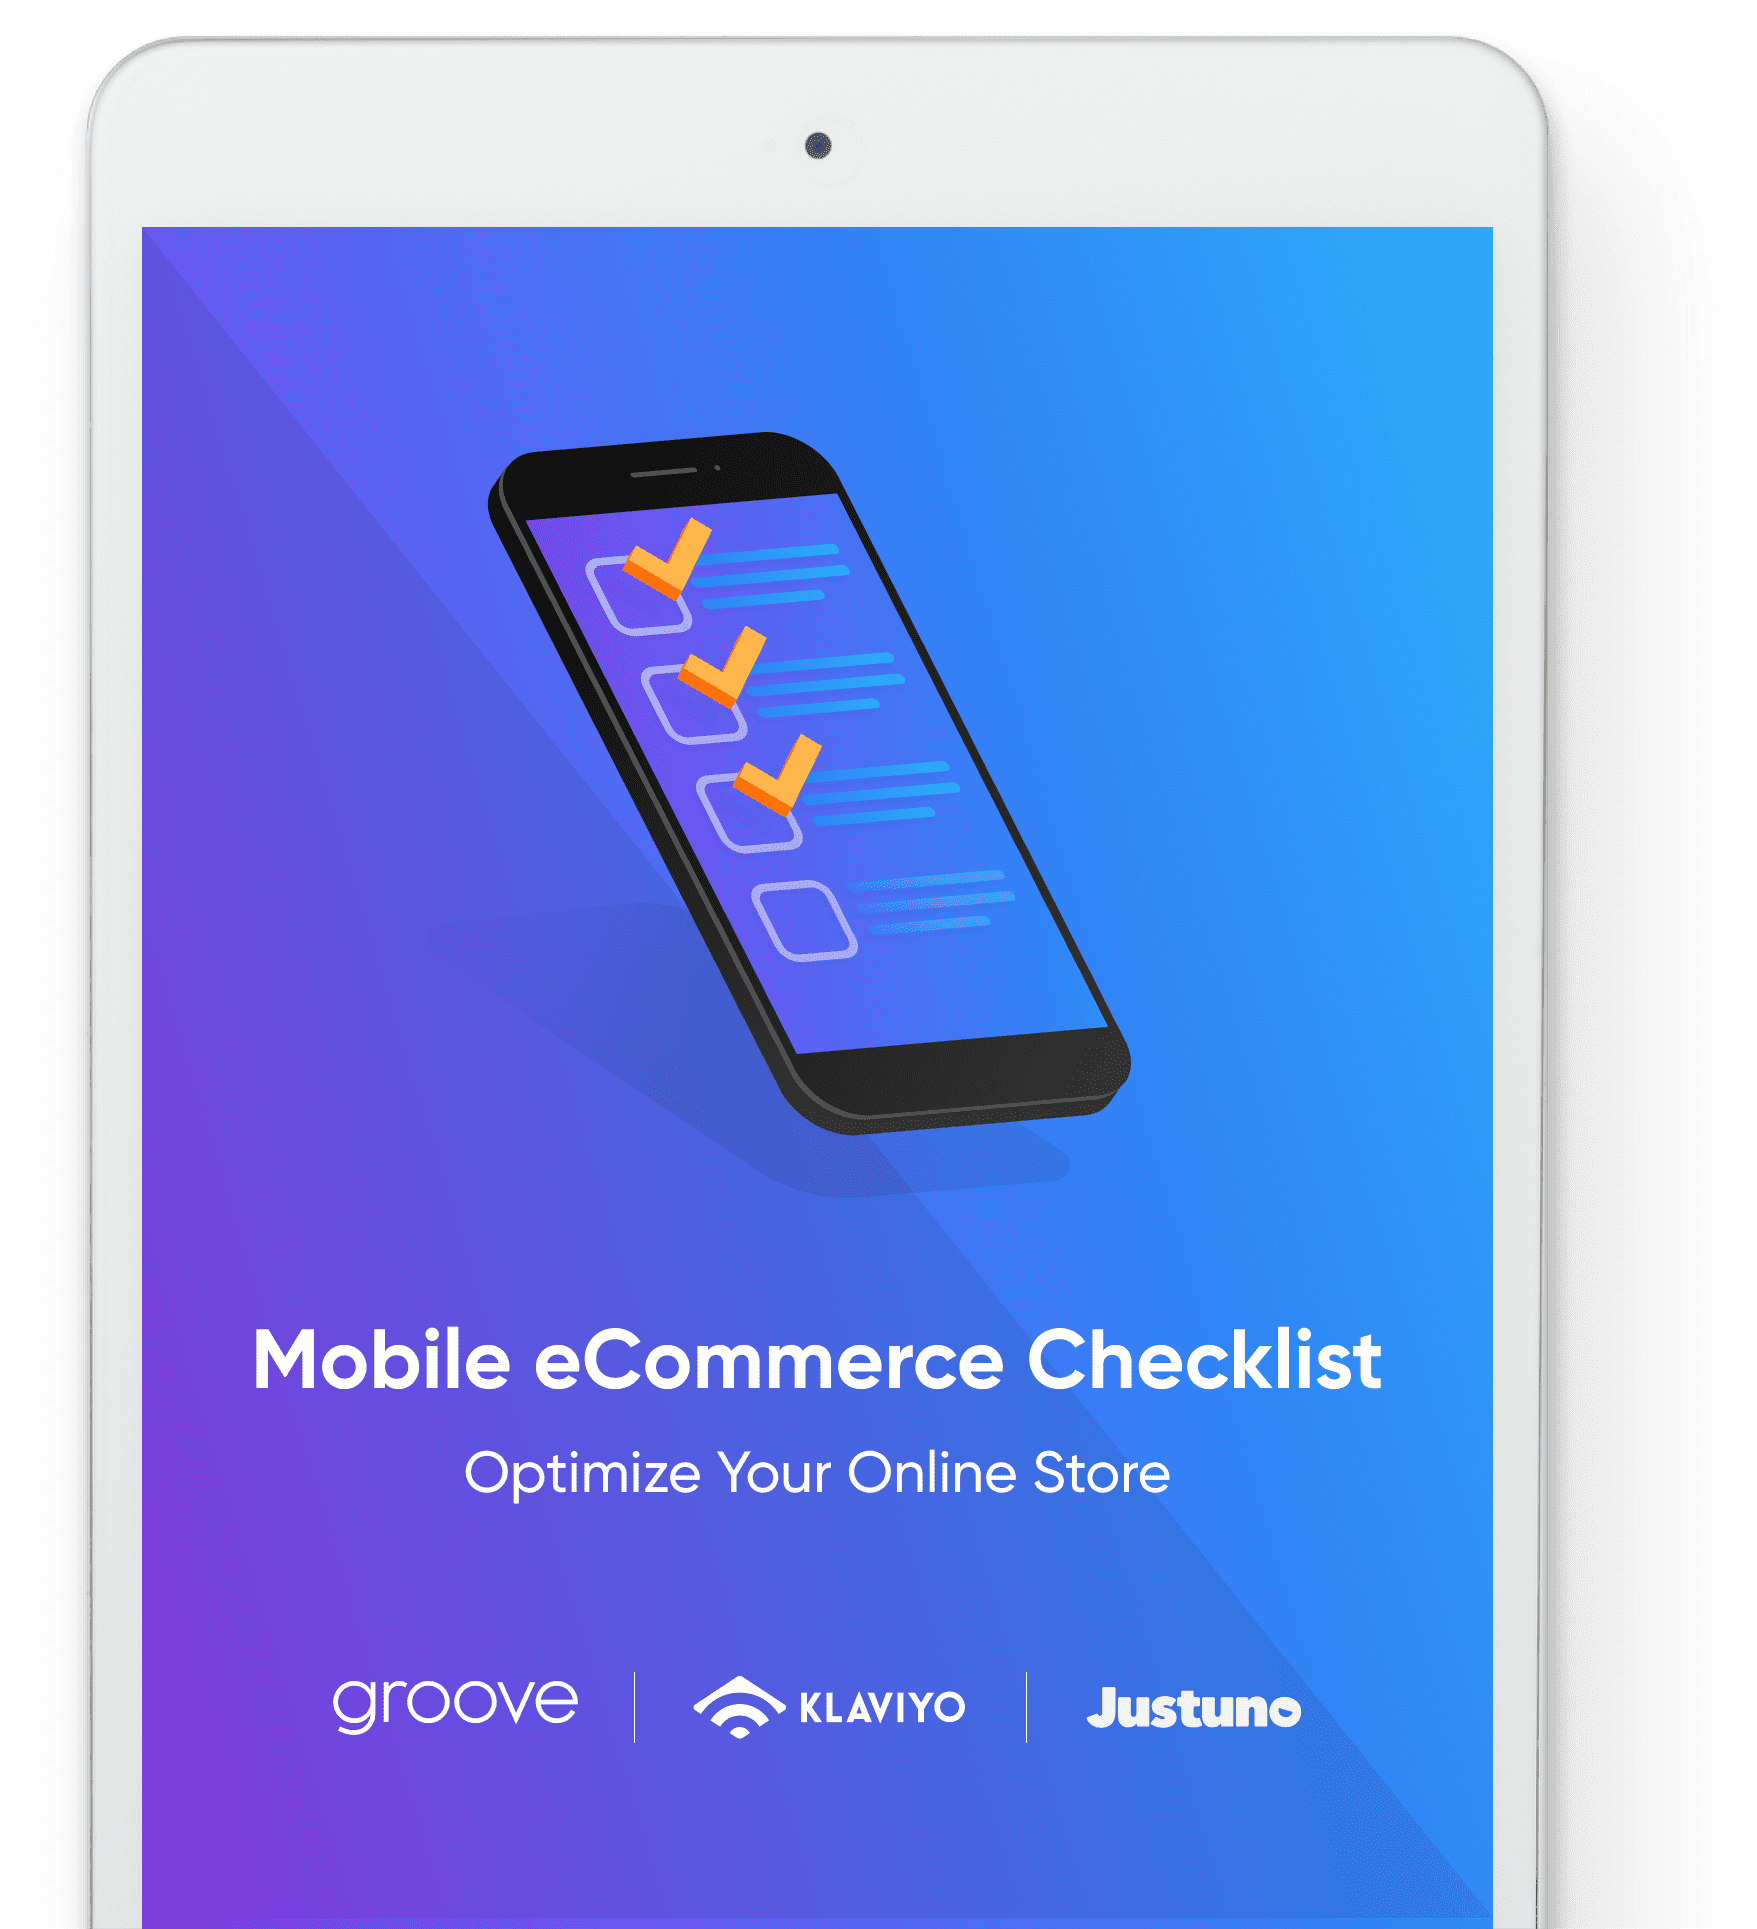 Mobile eCommerce Checklist: Optimizing Your Online Store